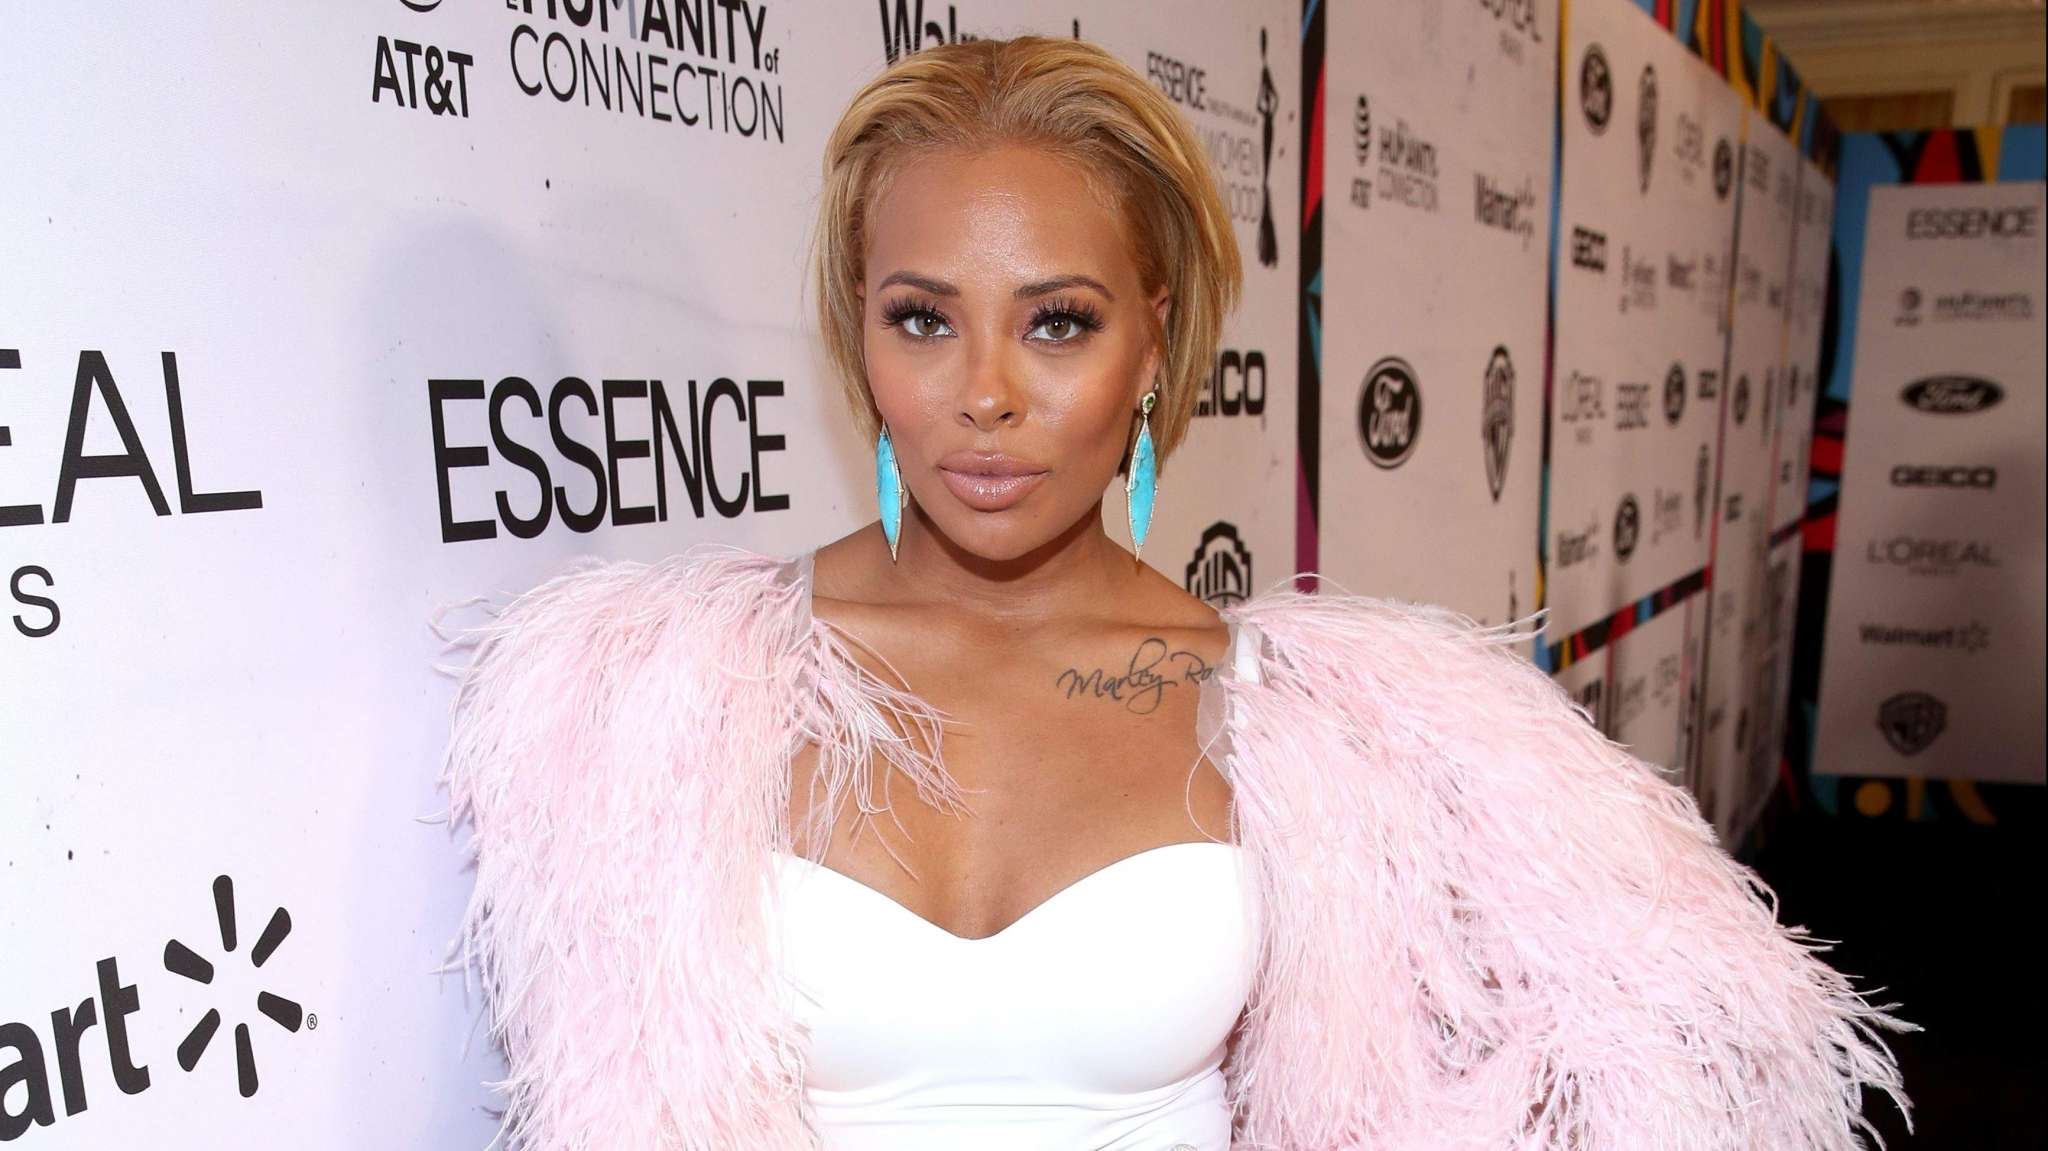 Eva Marcille Tells Fans She Works For Legacy, Not Labels - Read Her Message Here